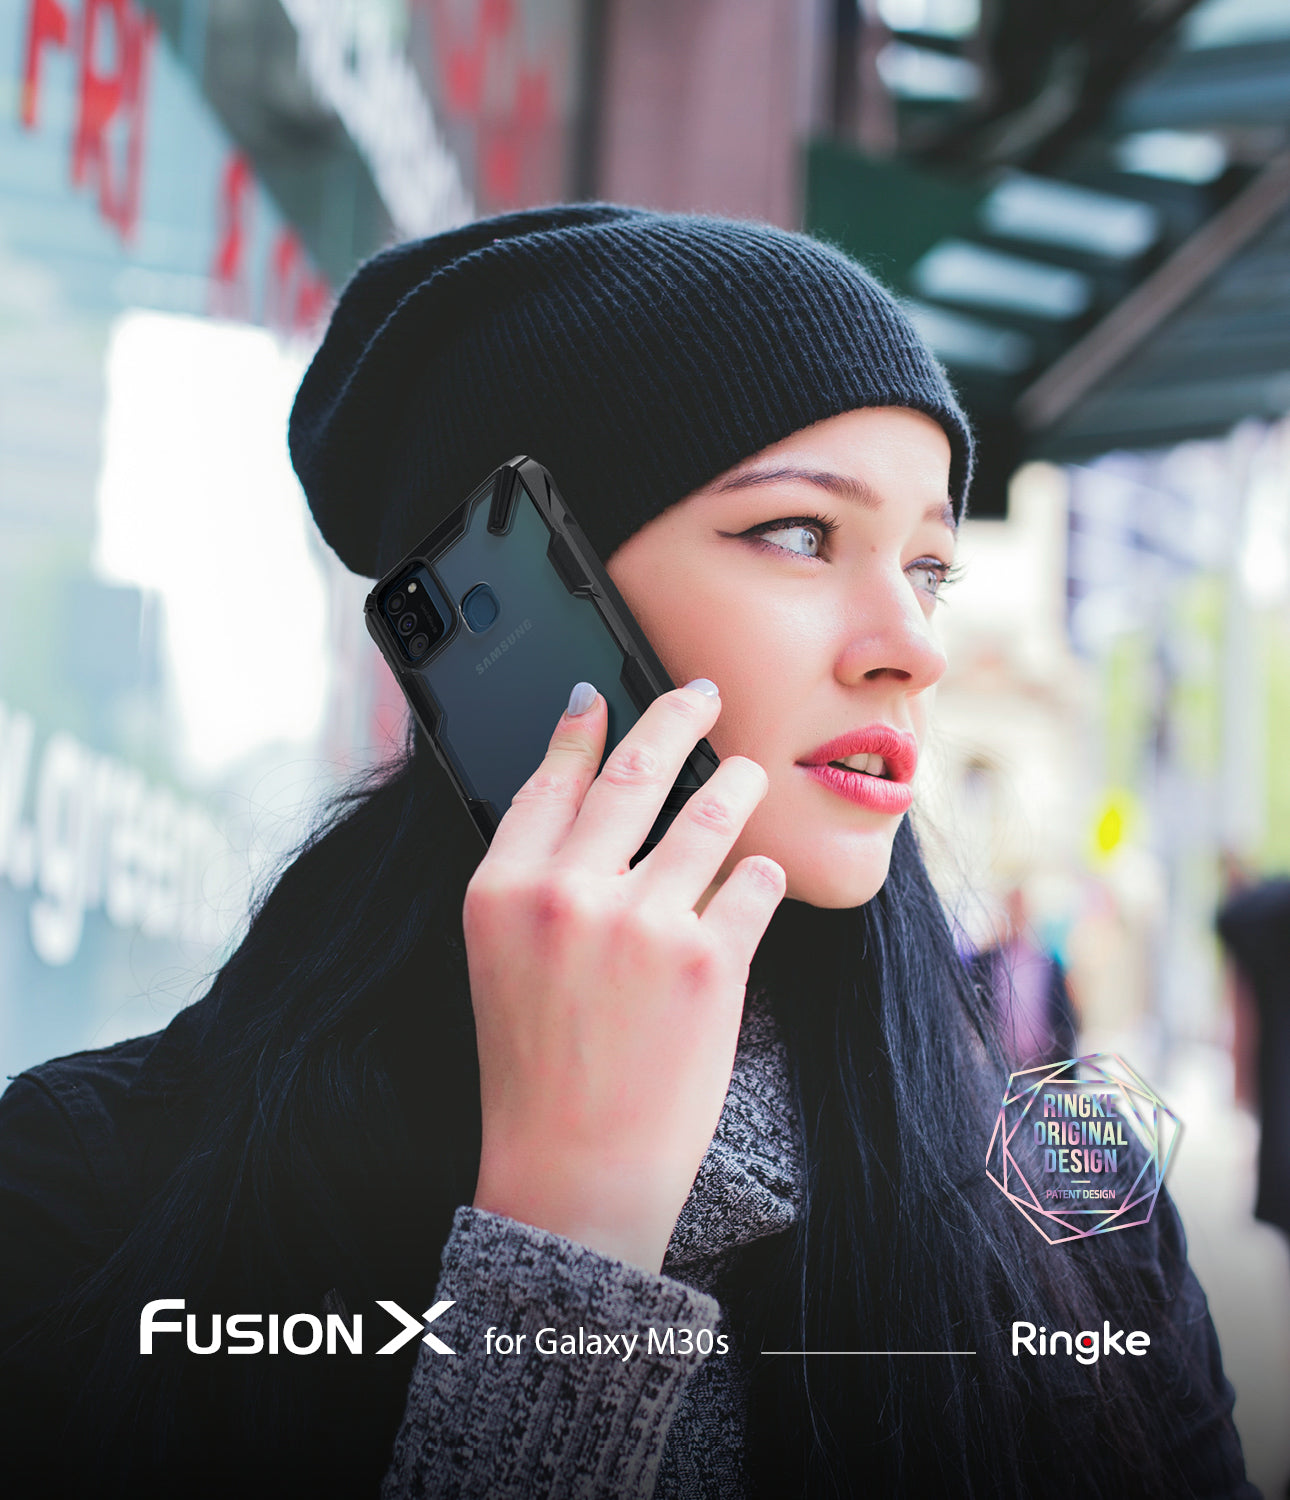 ringke fusion-x case designed for samsung galaxy m30s